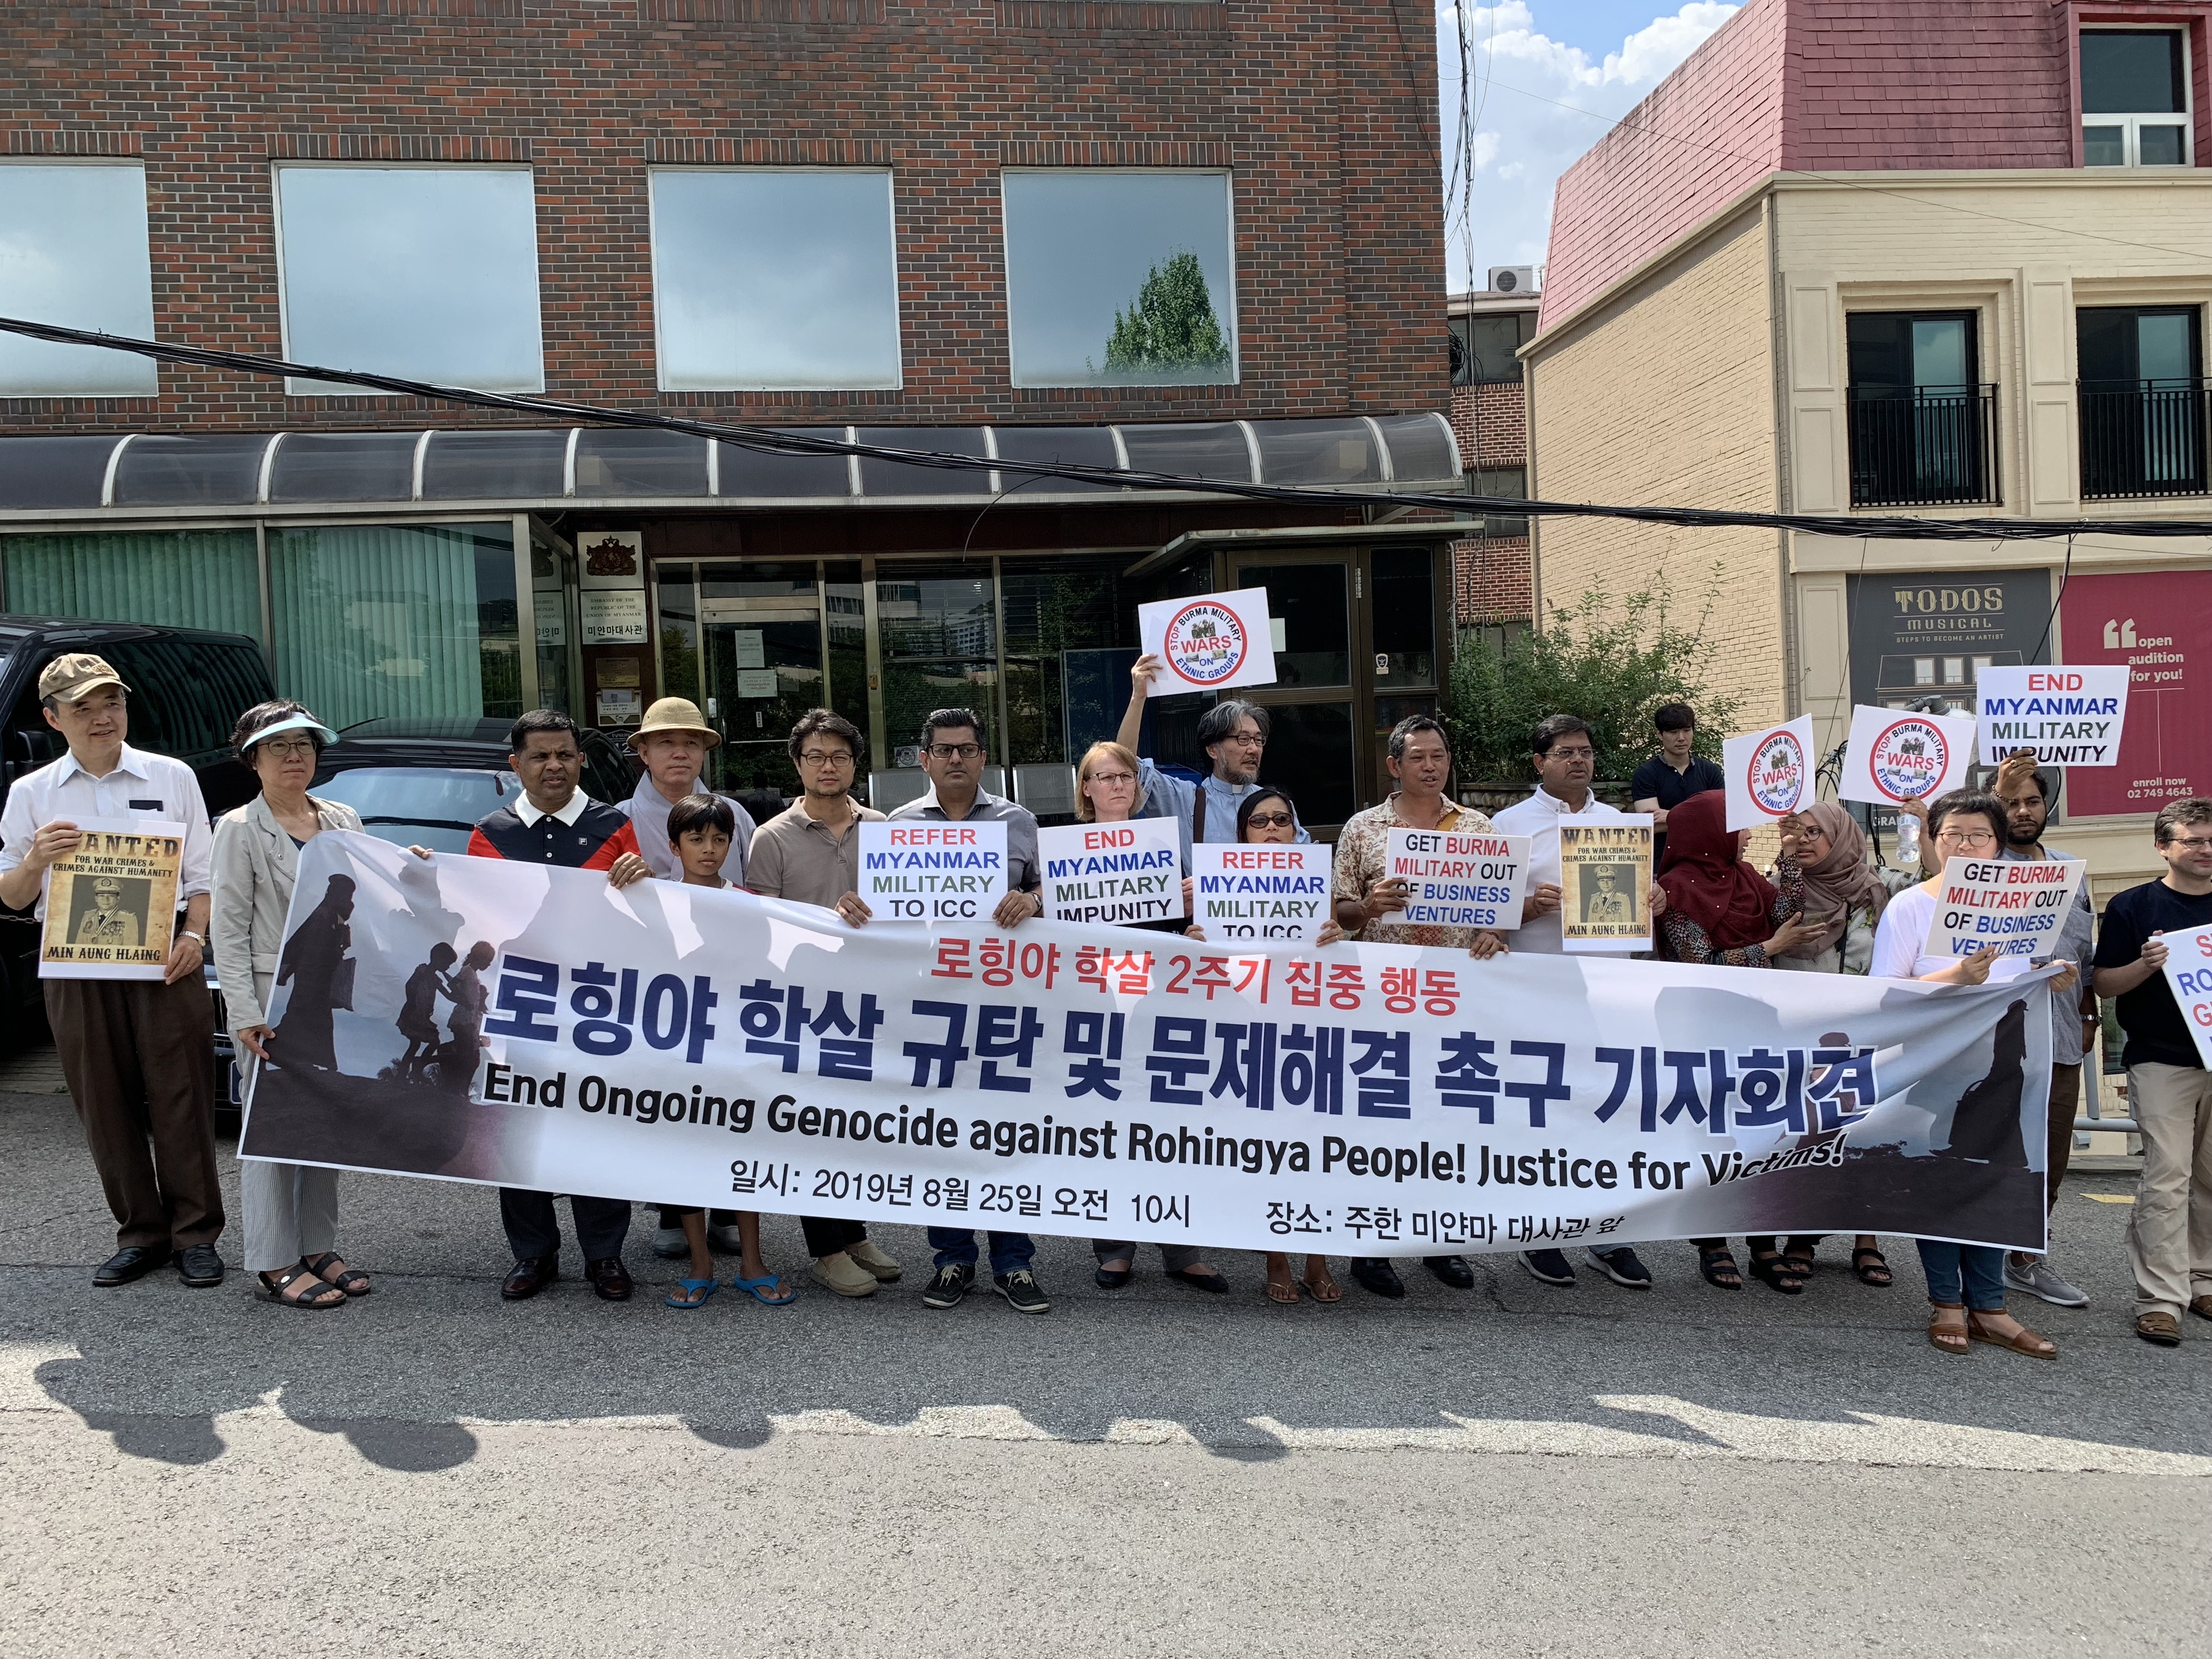 Protest in front of Myanmar Embassy in Seoul